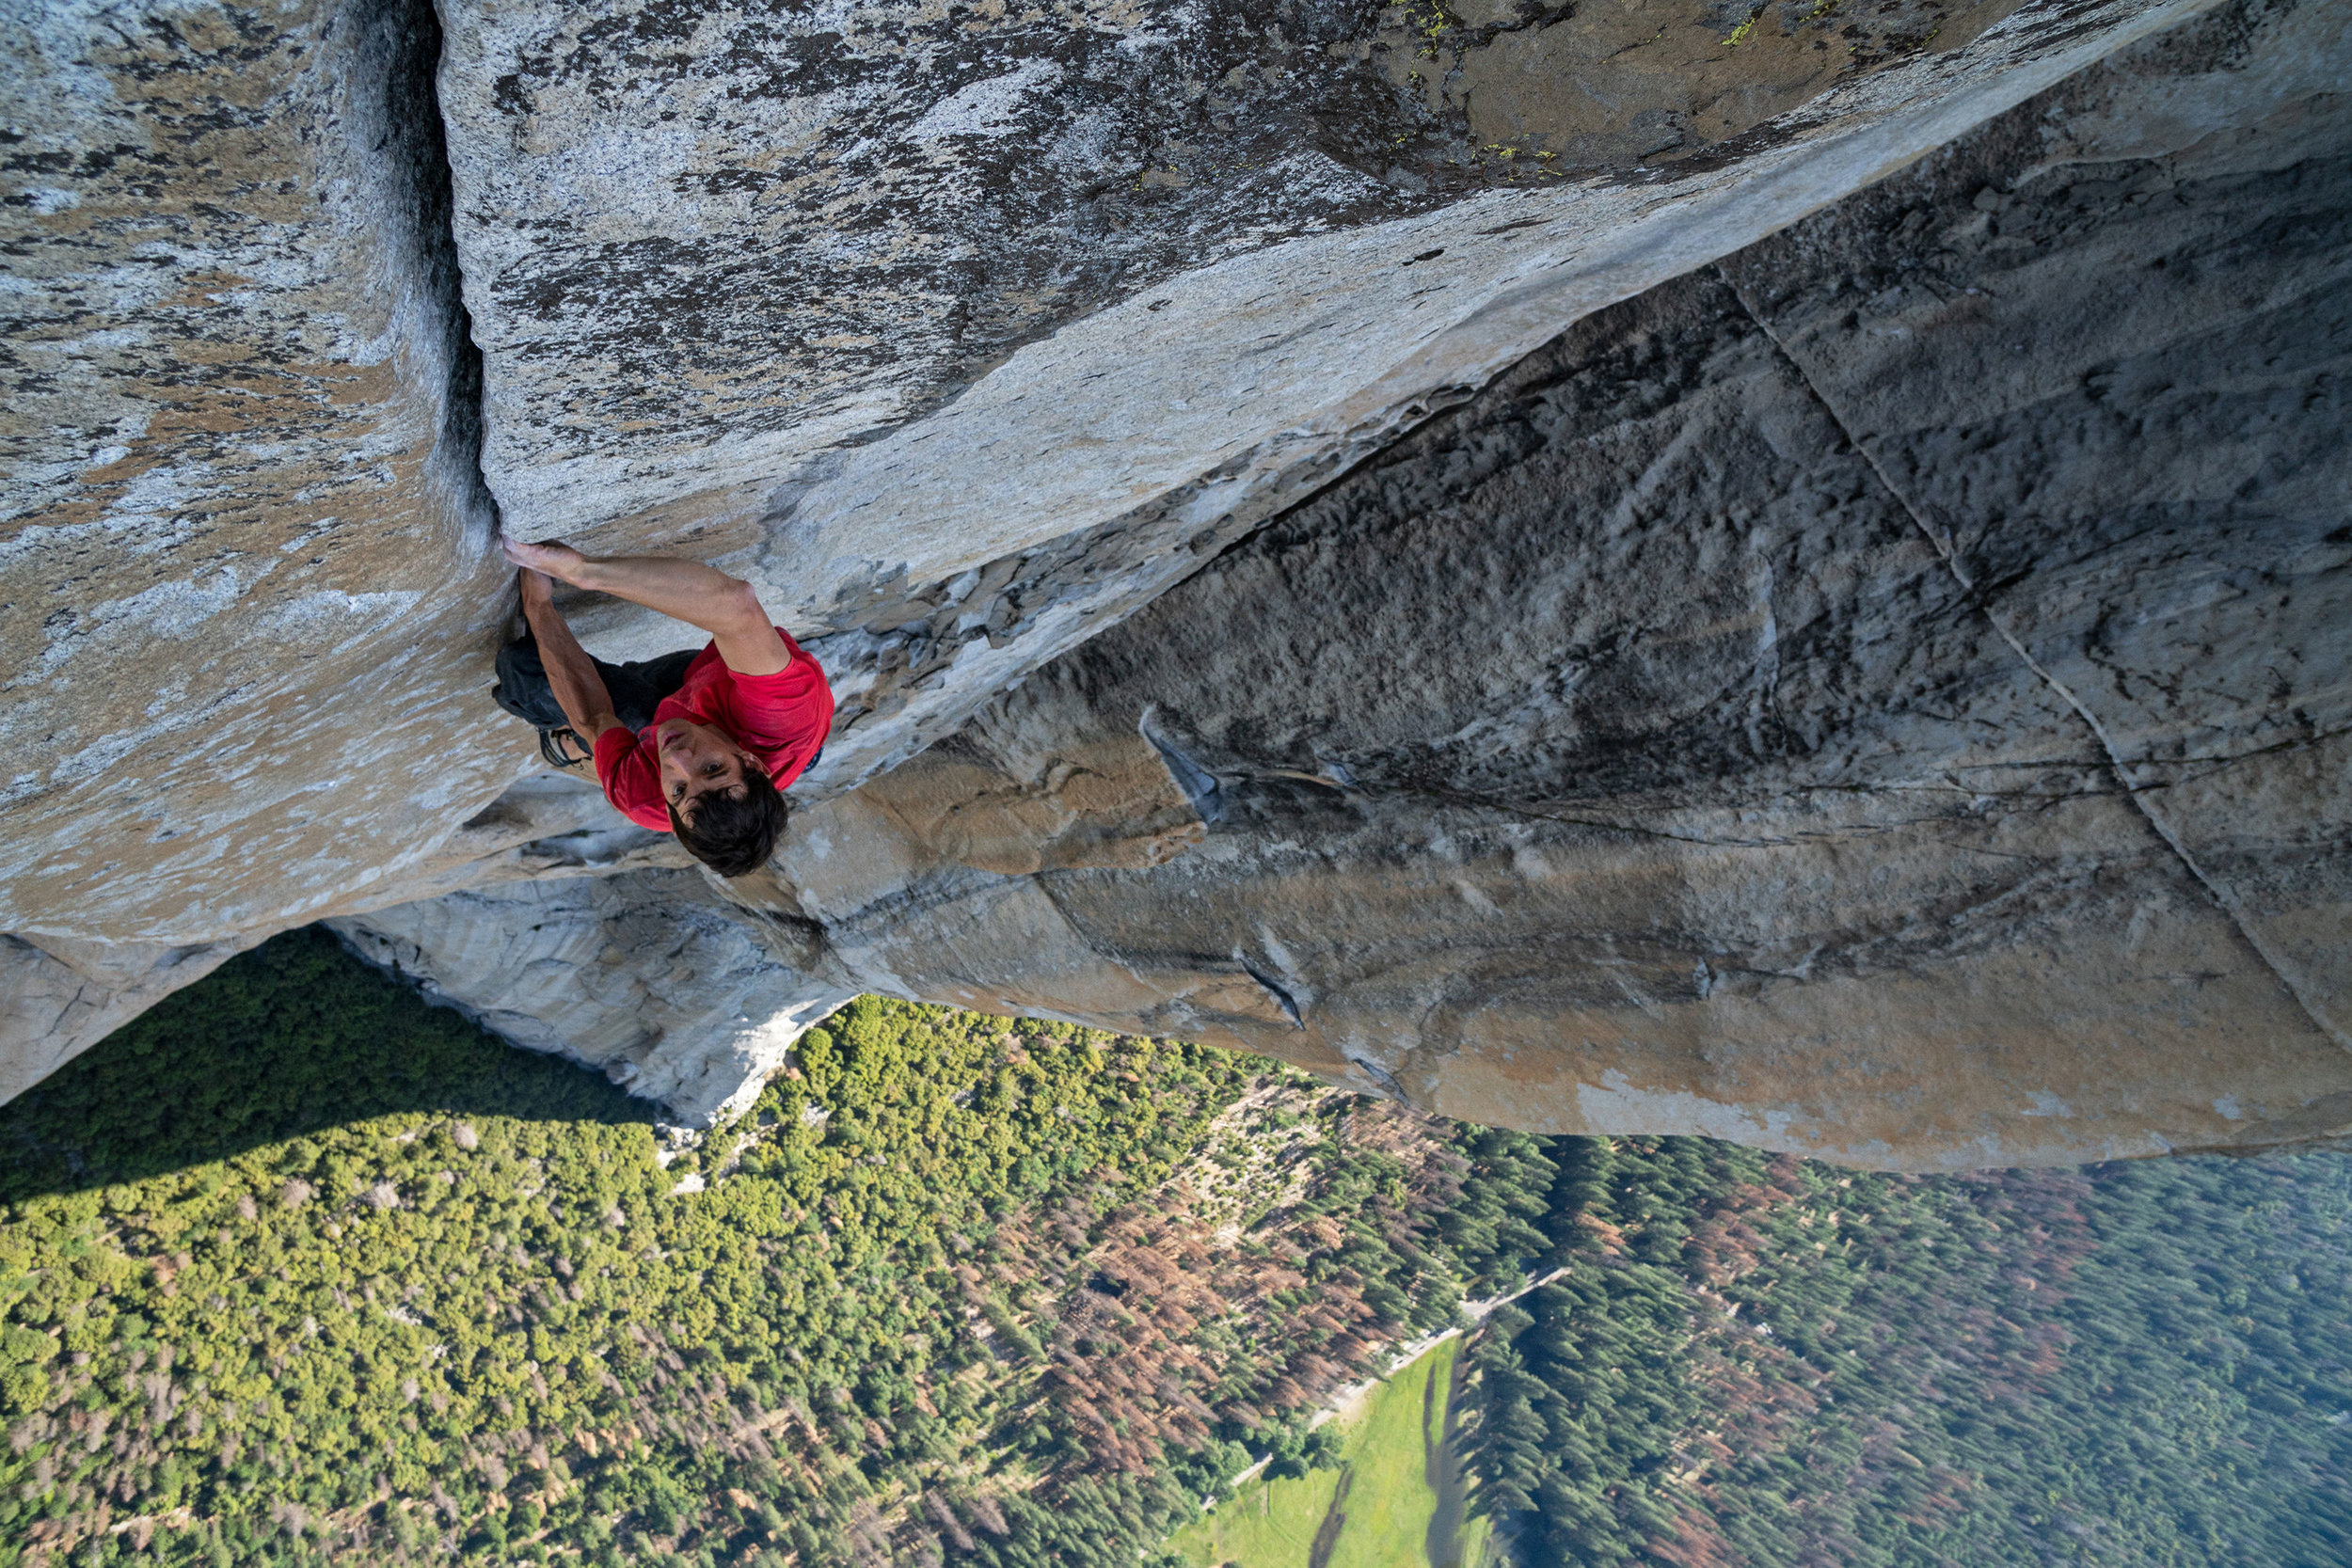 Directed by Jimmy Chin & Elizabeth Chai Vasarhelyi